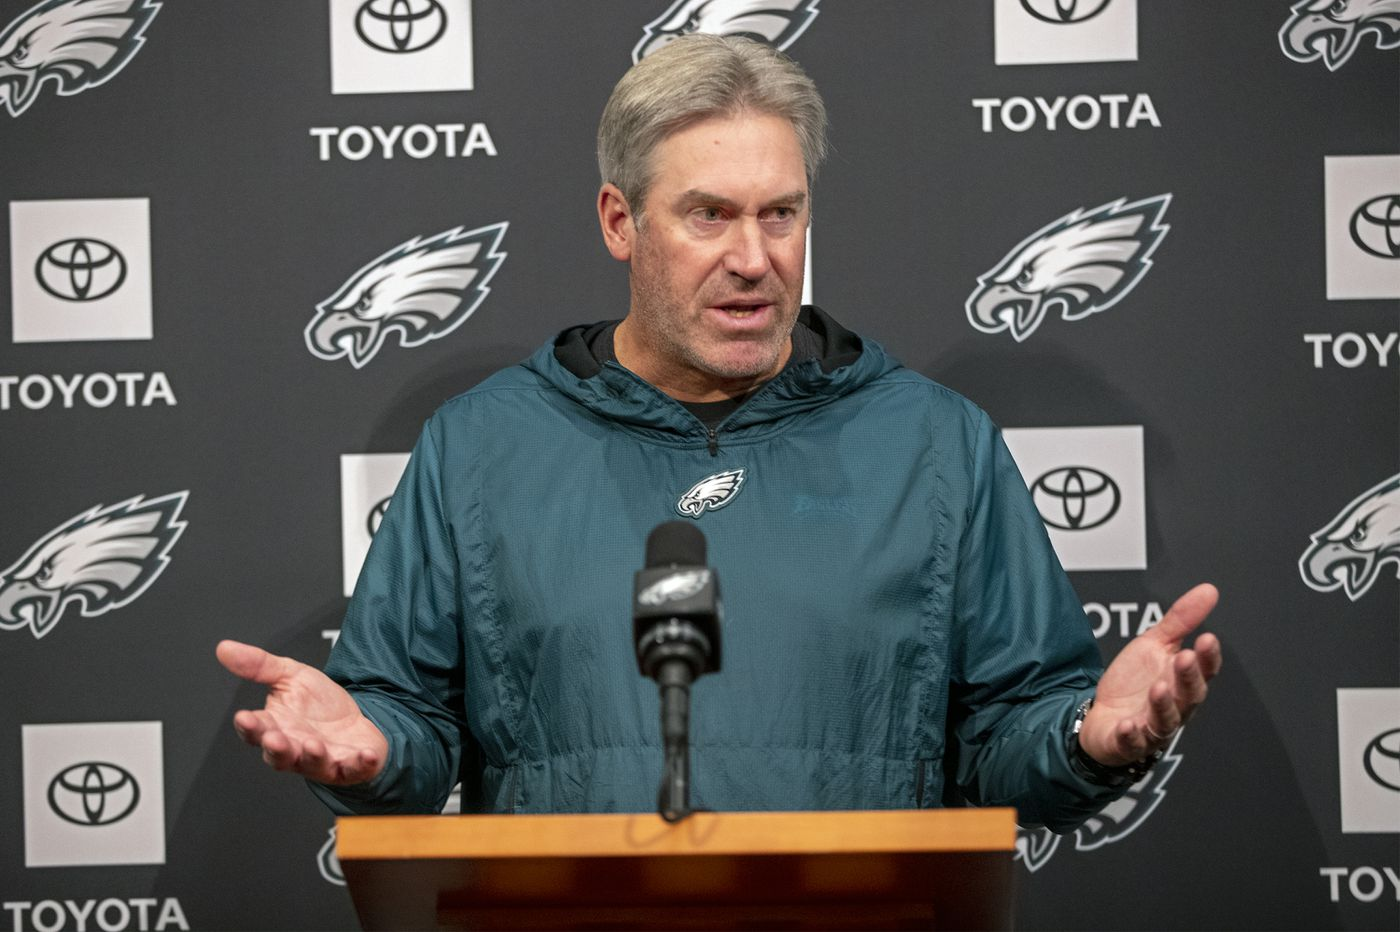 What we learned from Eagles-Cowboys: Doug Pederson's two biggest problems may be his coordinators